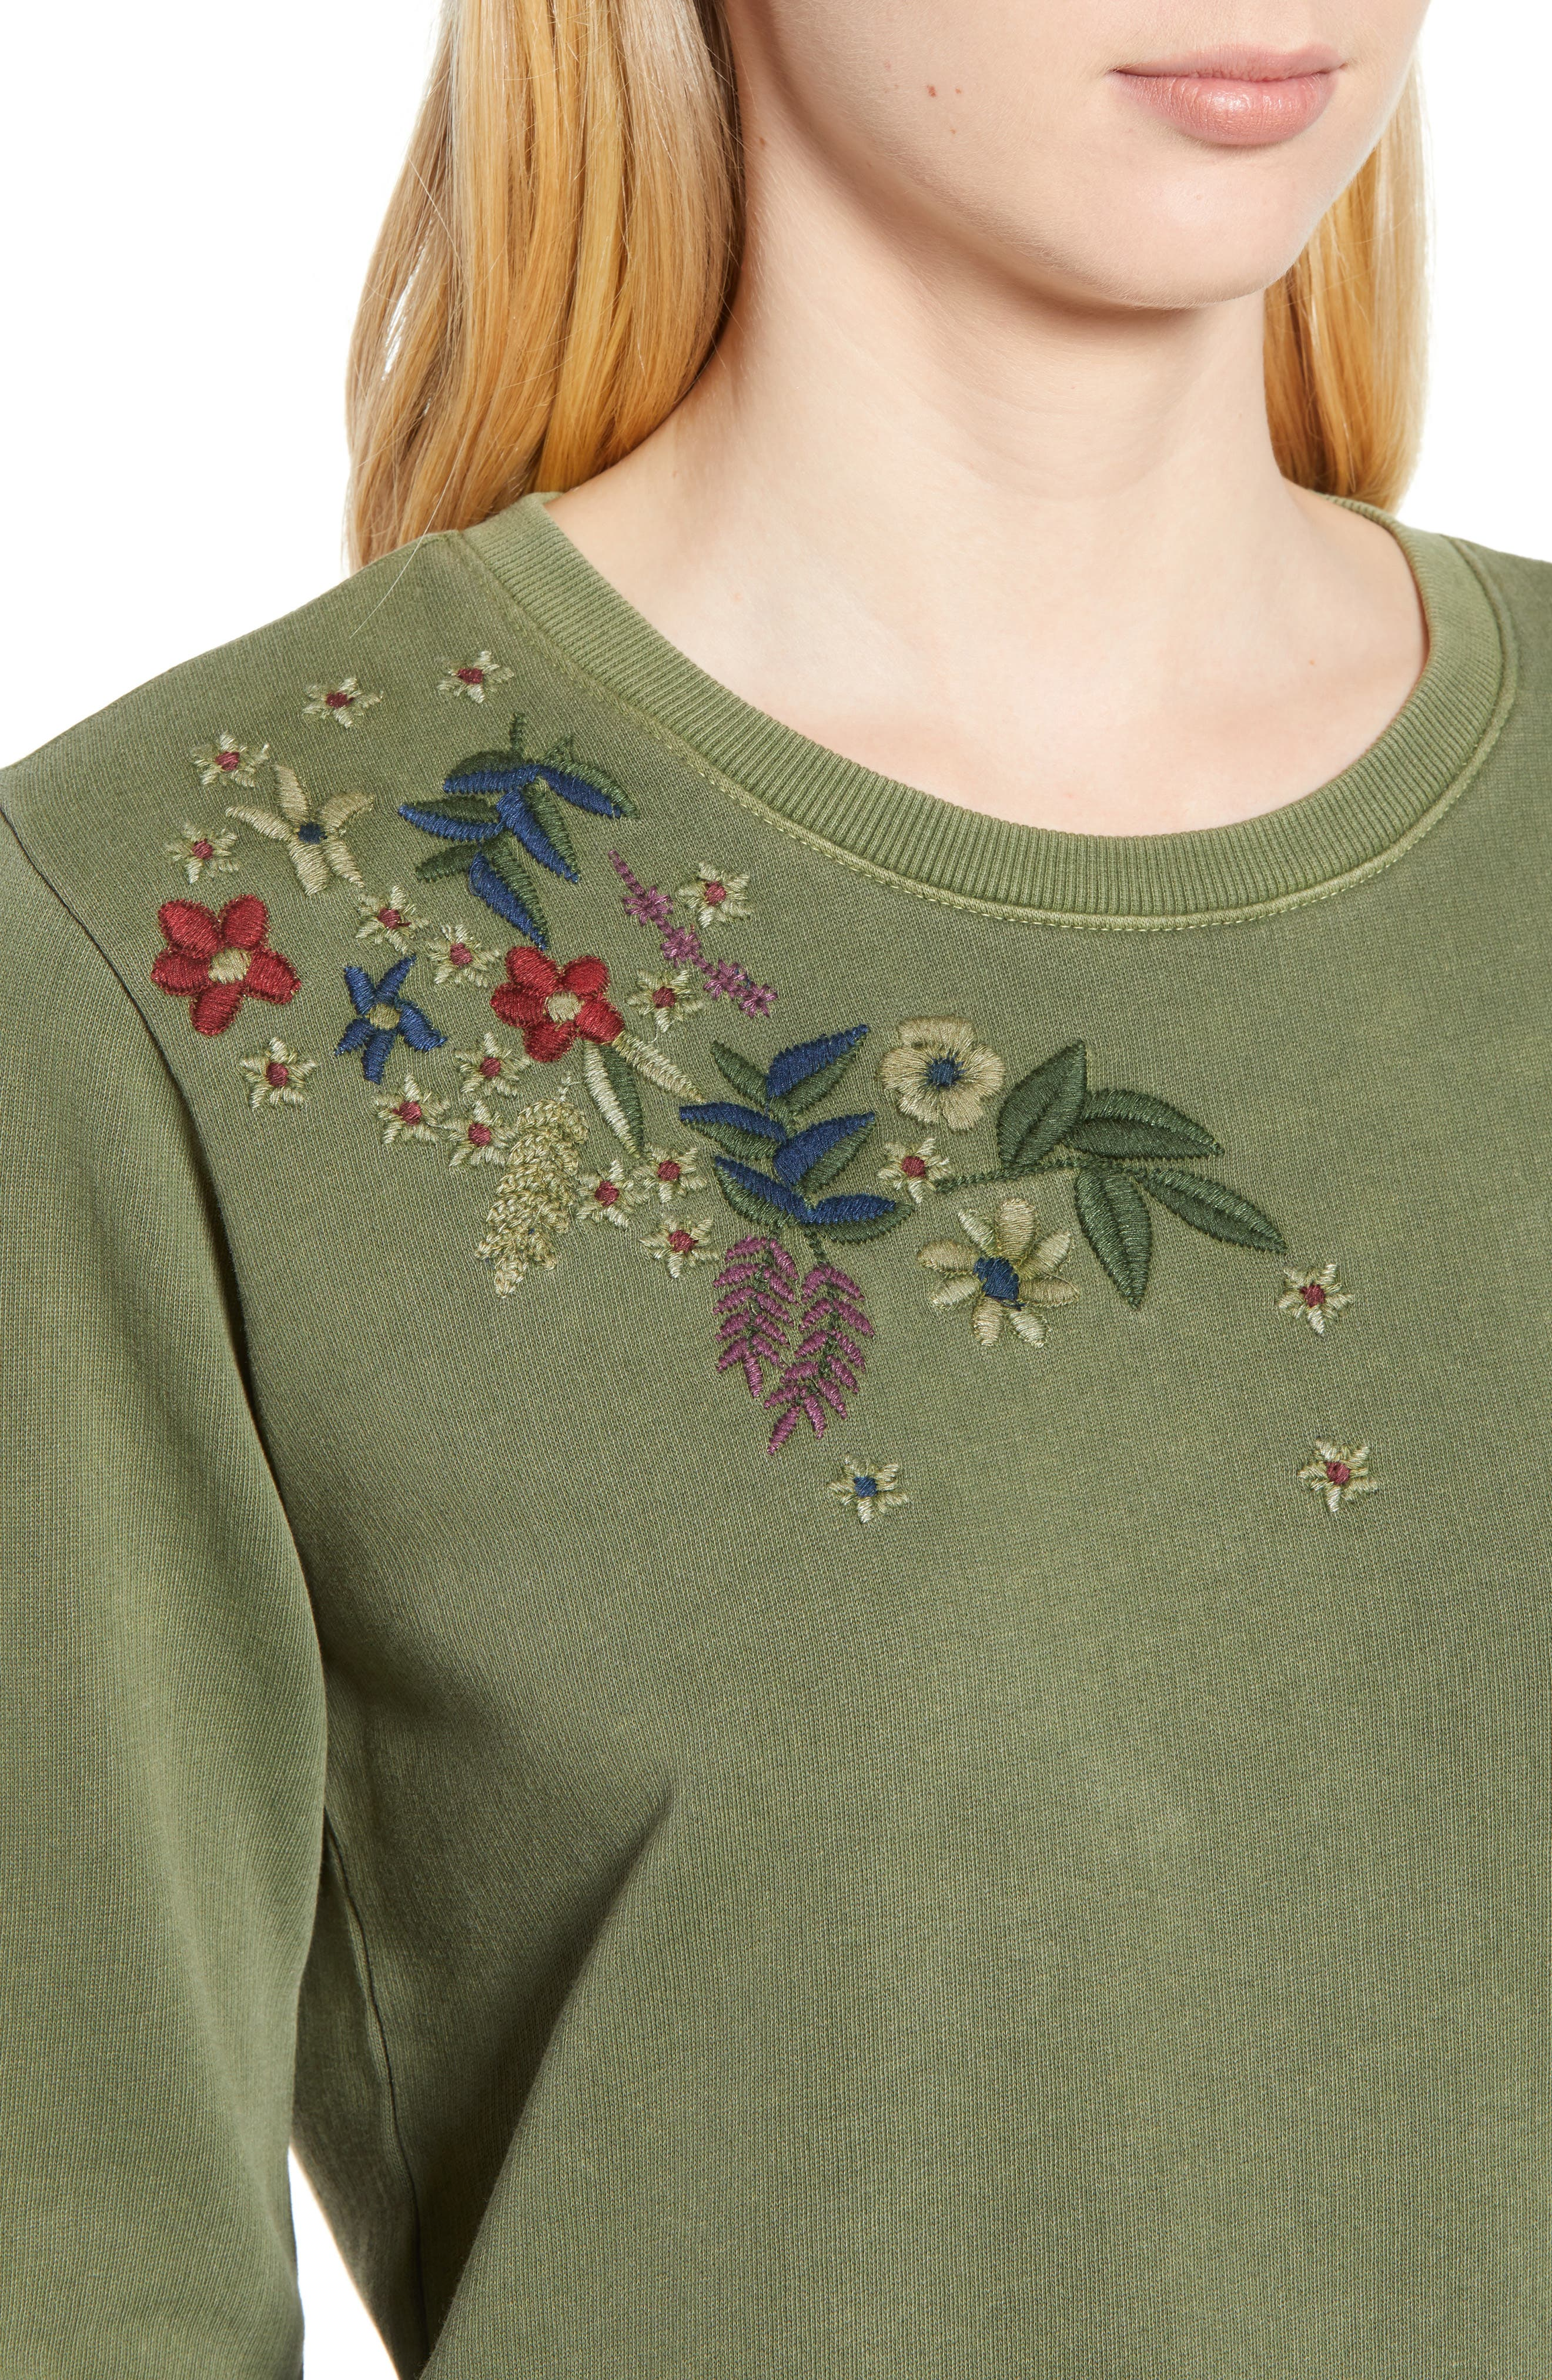 Embroidered Flowers Sweatshirt,                             Alternate thumbnail 4, color,                             OLIVE KNIT